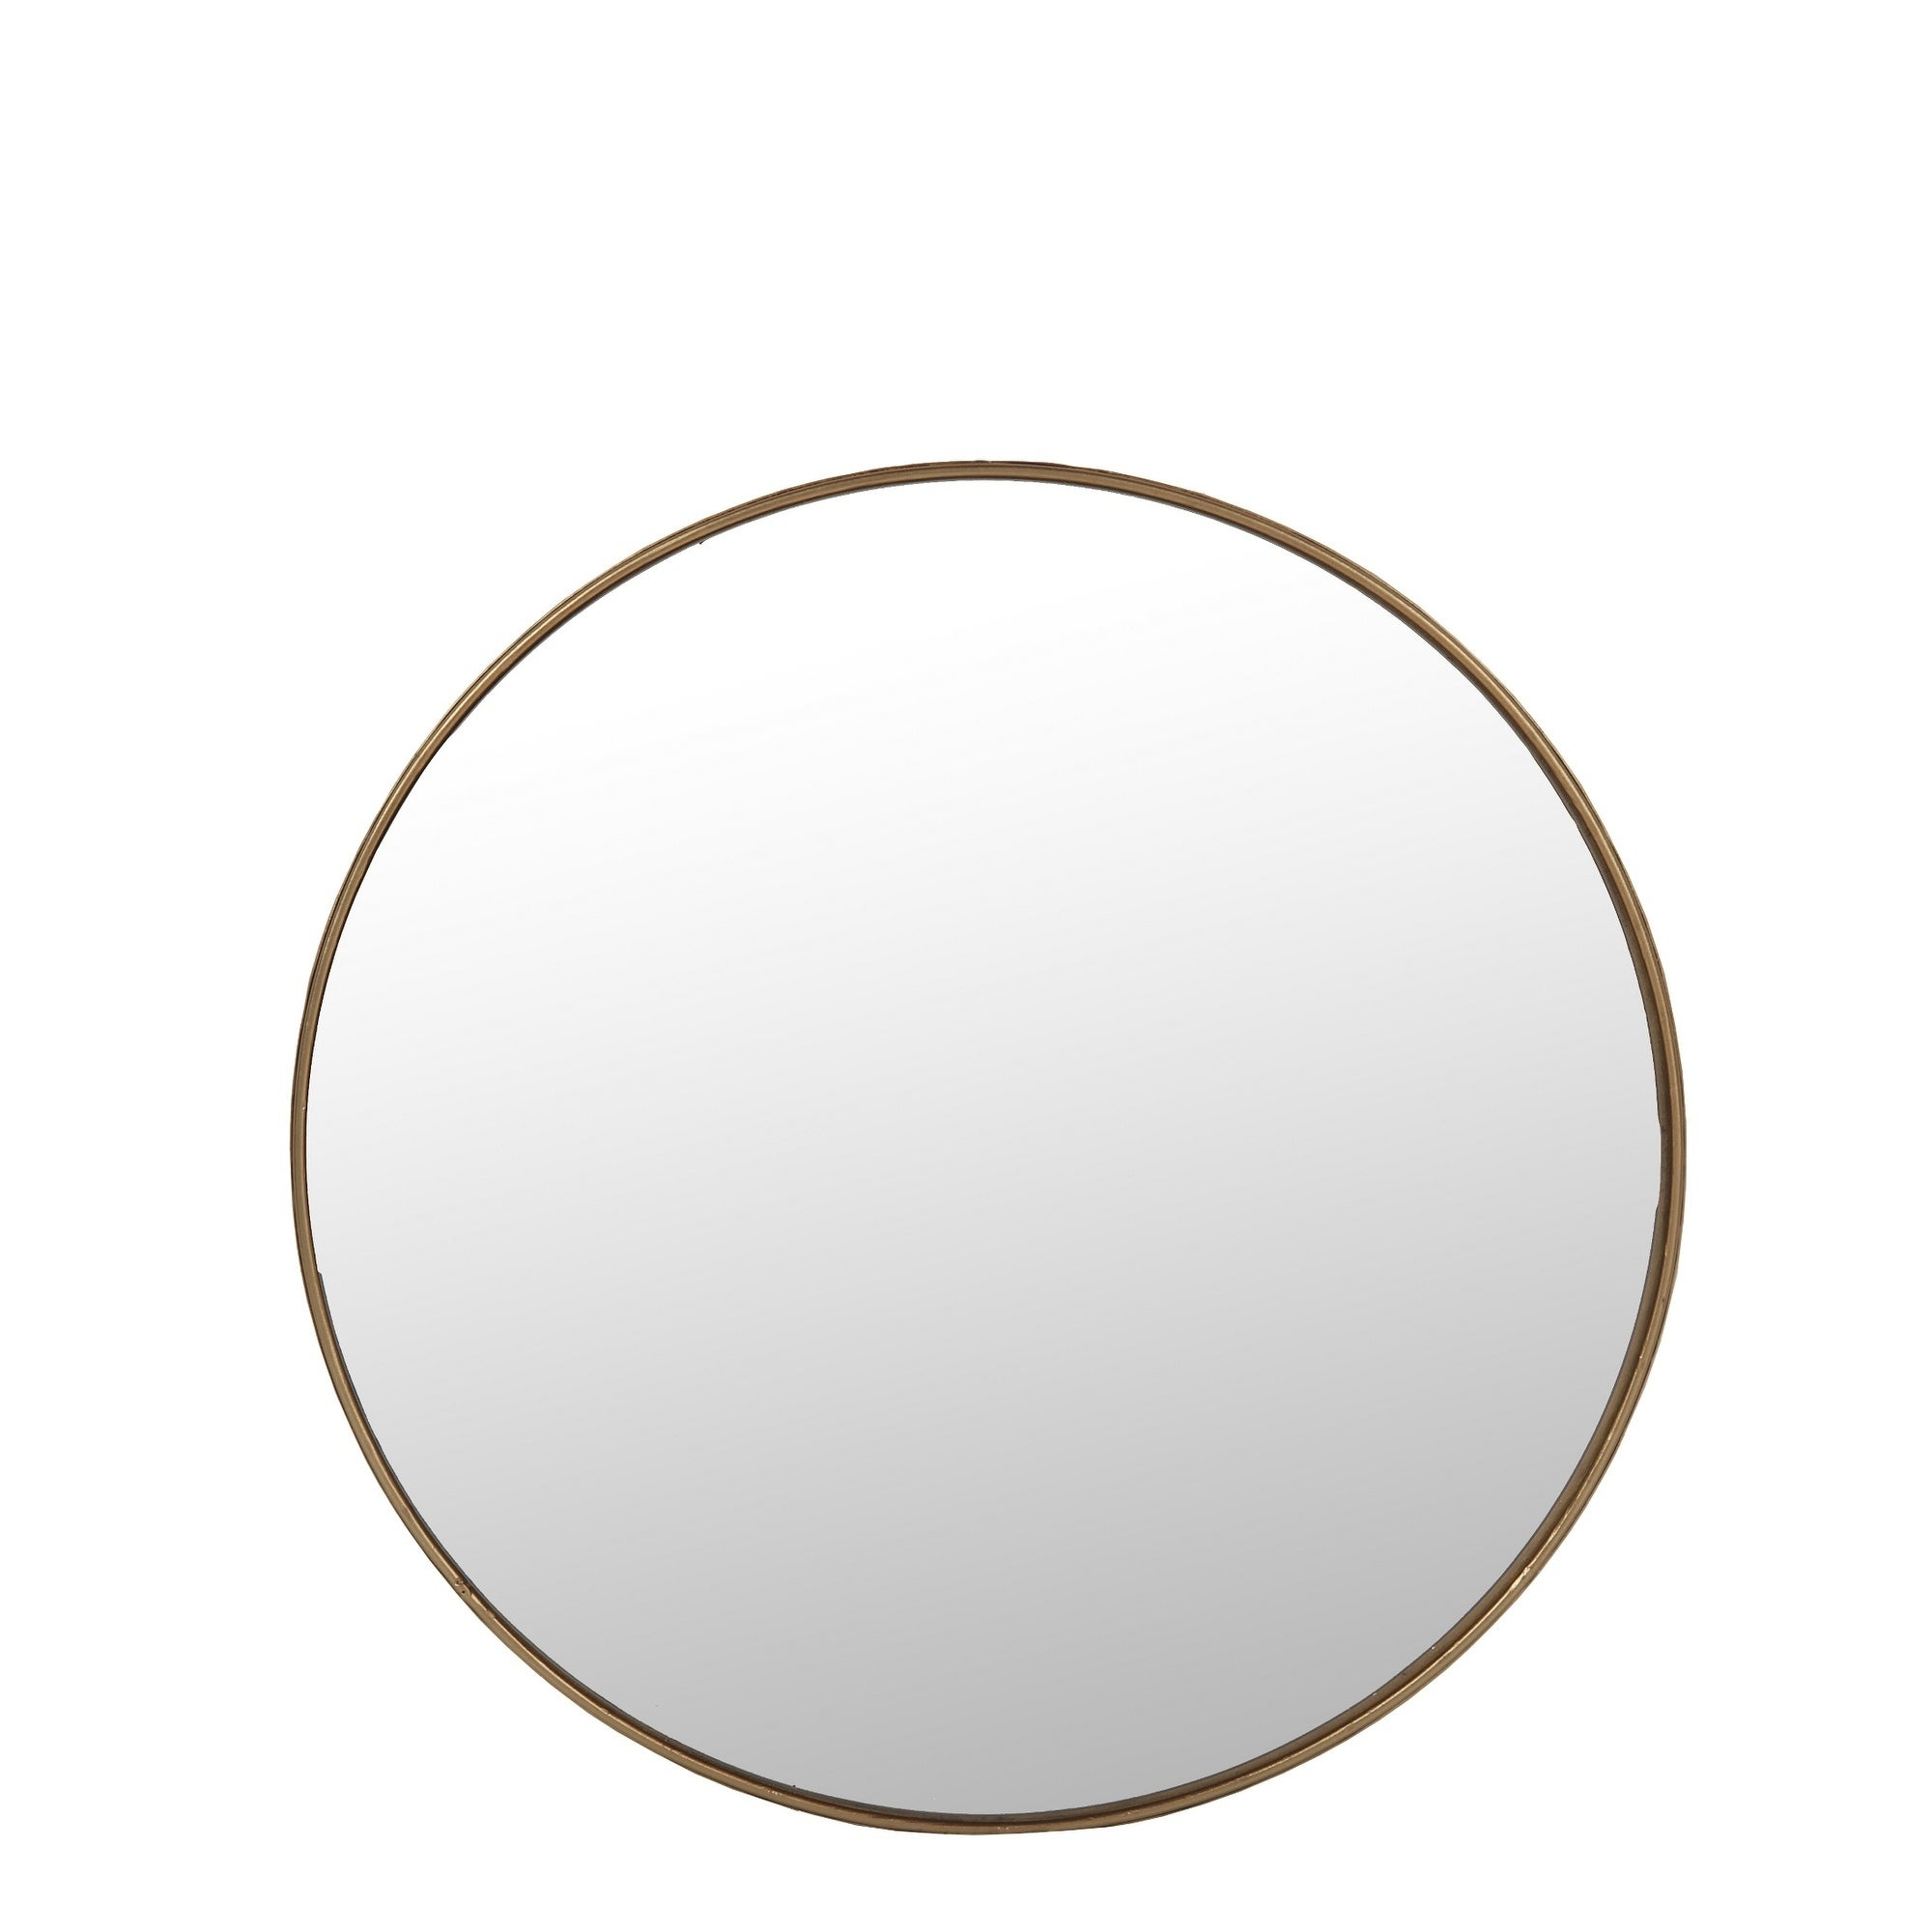 Round Mirrors | Shop Online At Overstock With Needville Modern & Contemporary Accent Mirrors (Image 18 of 20)